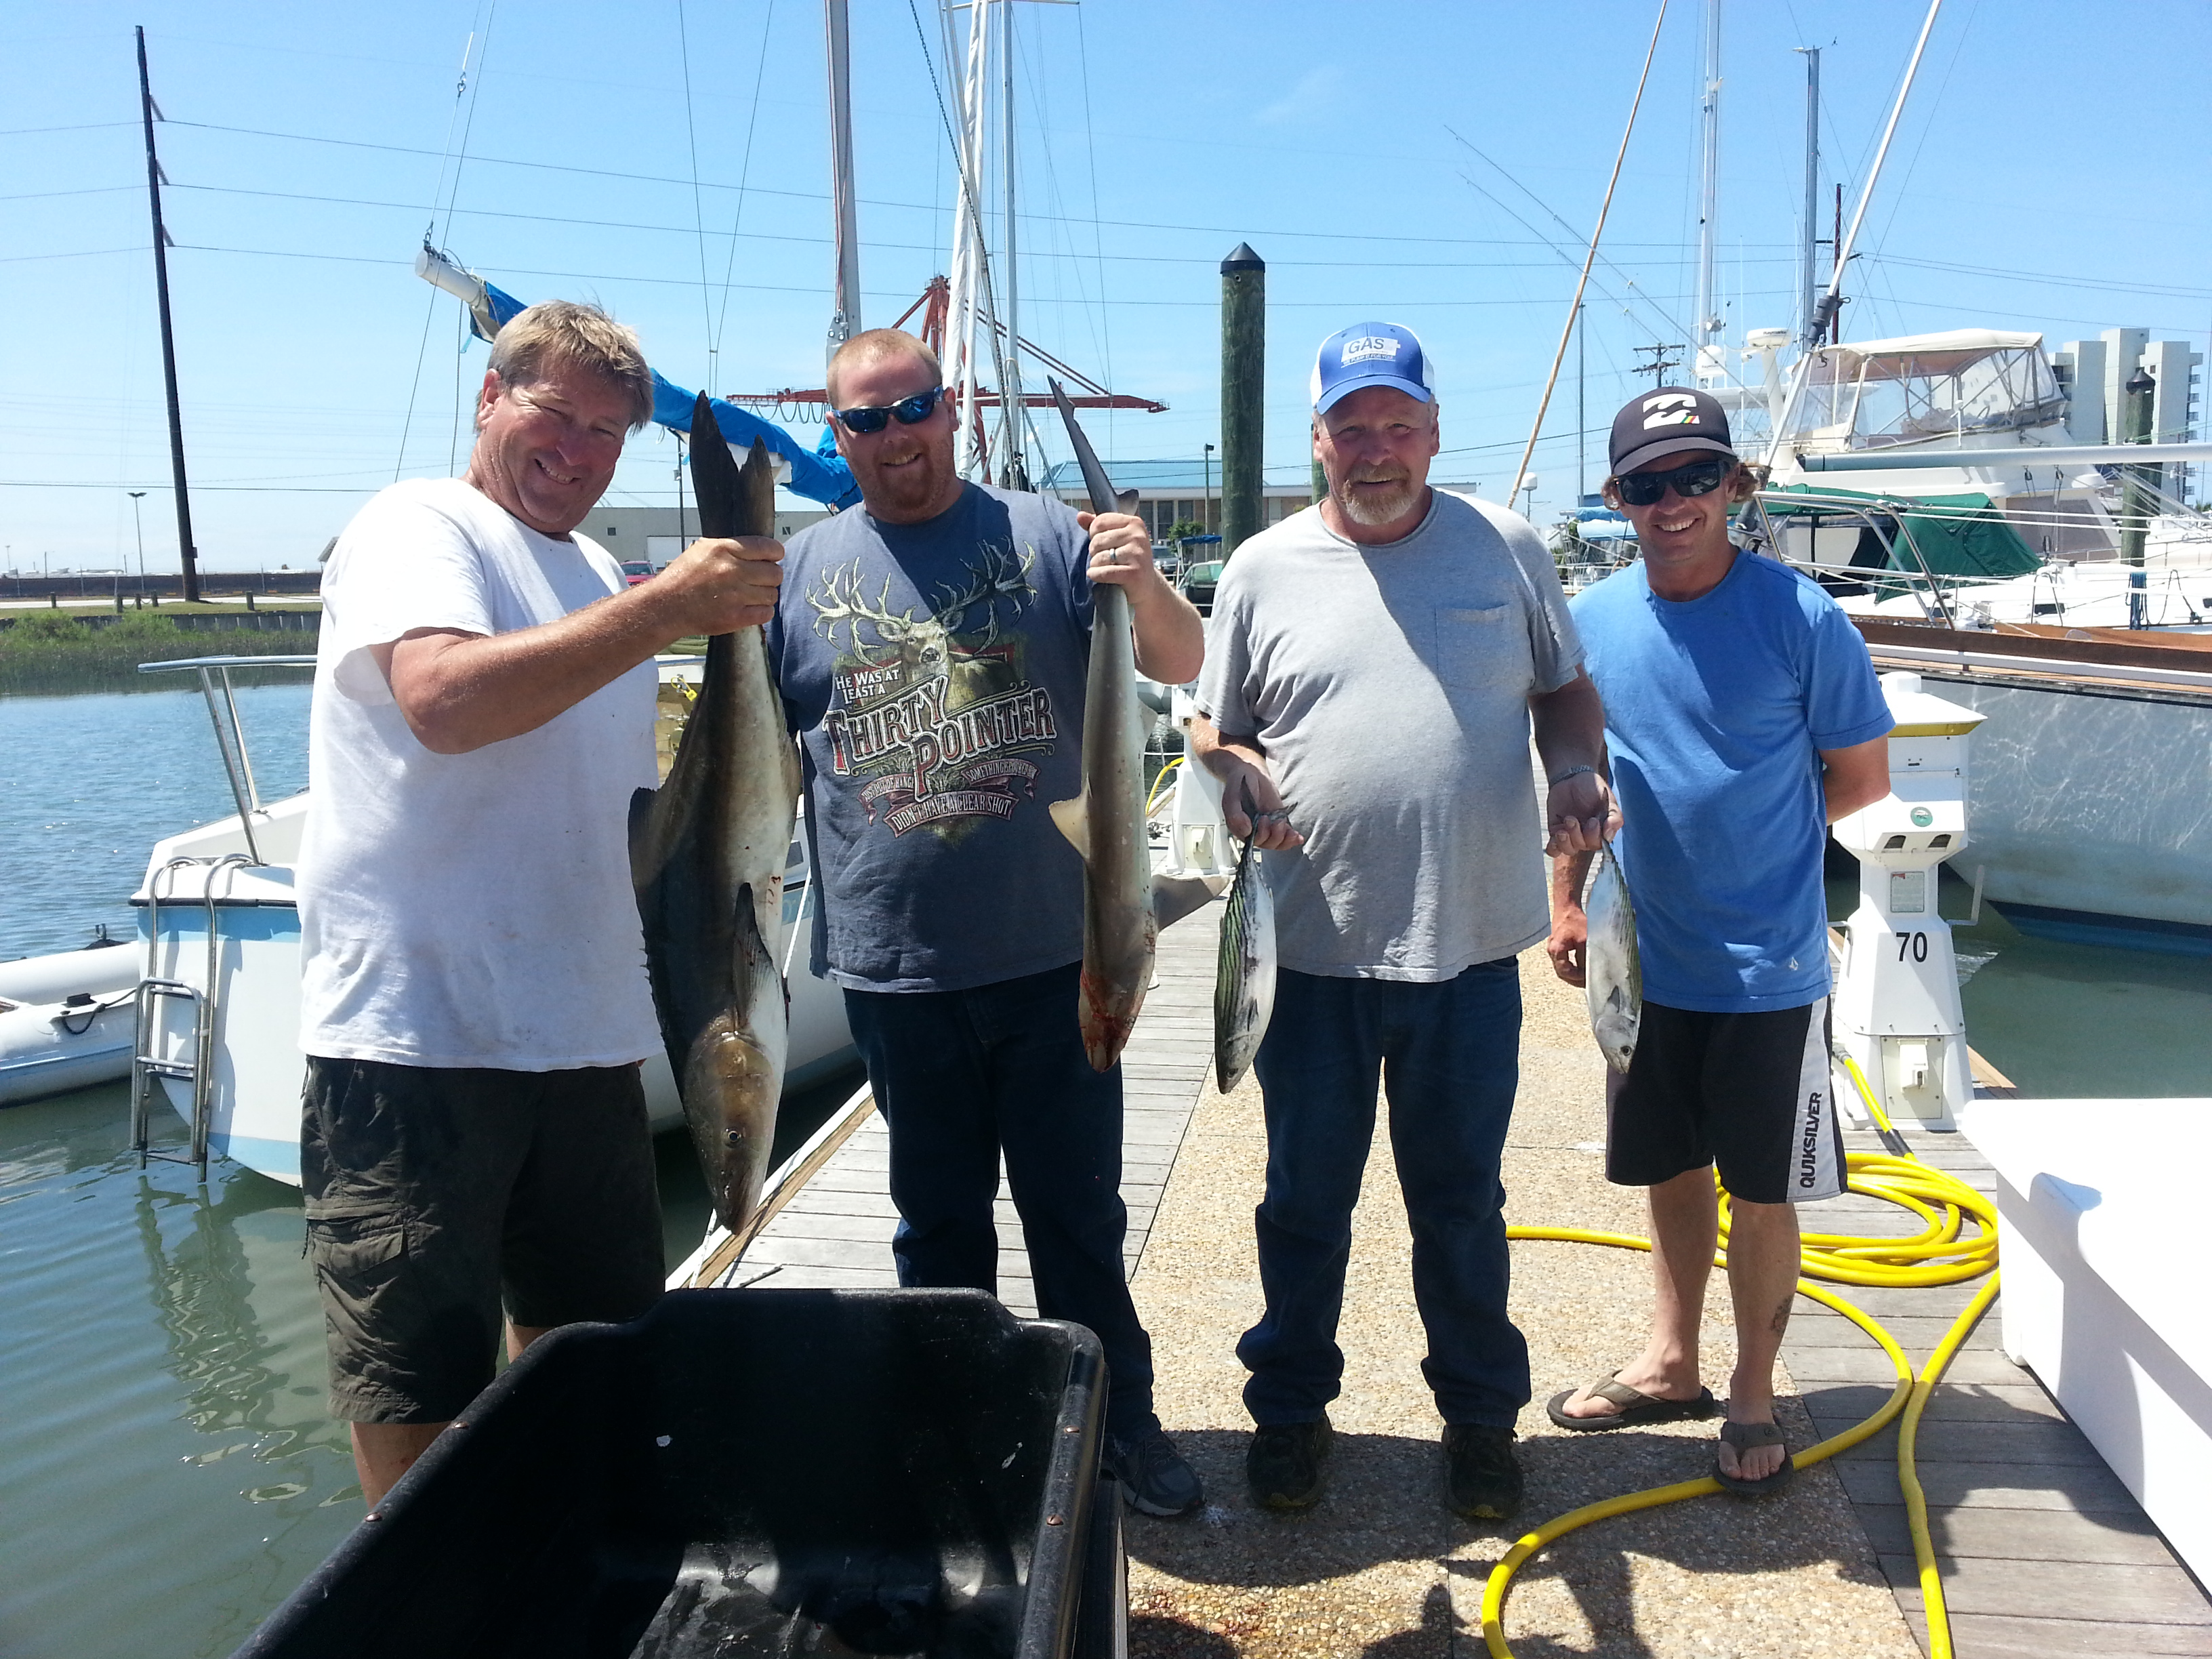 Lookout adventures in morehead city nc 28557 for Fishing charters morehead city nc